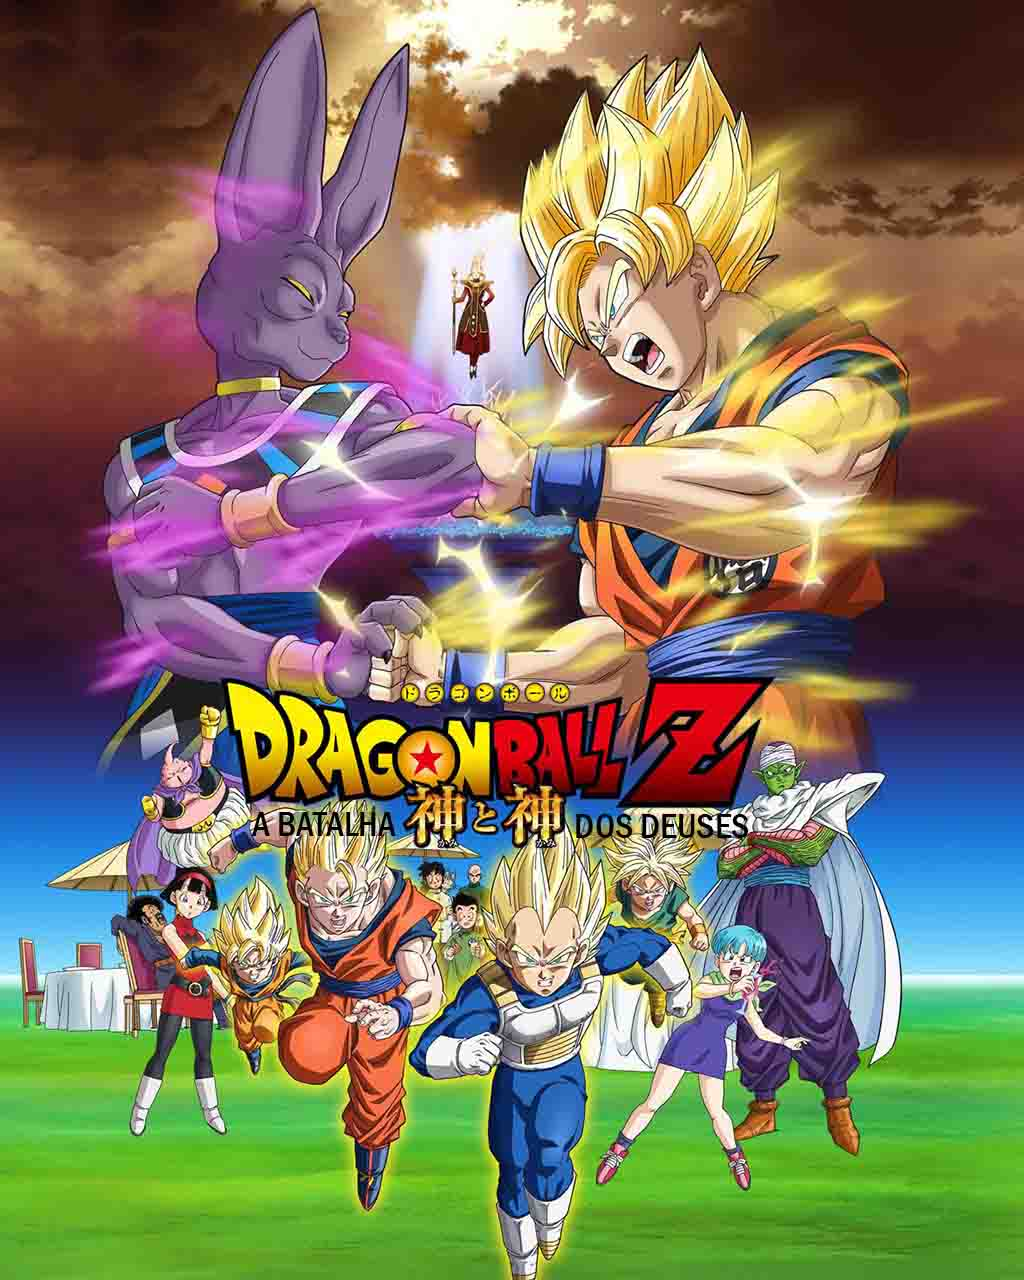 Dragon Ball Z: A Batalha dos Deuses Torrent - BluRay 1080p Dual Áudio